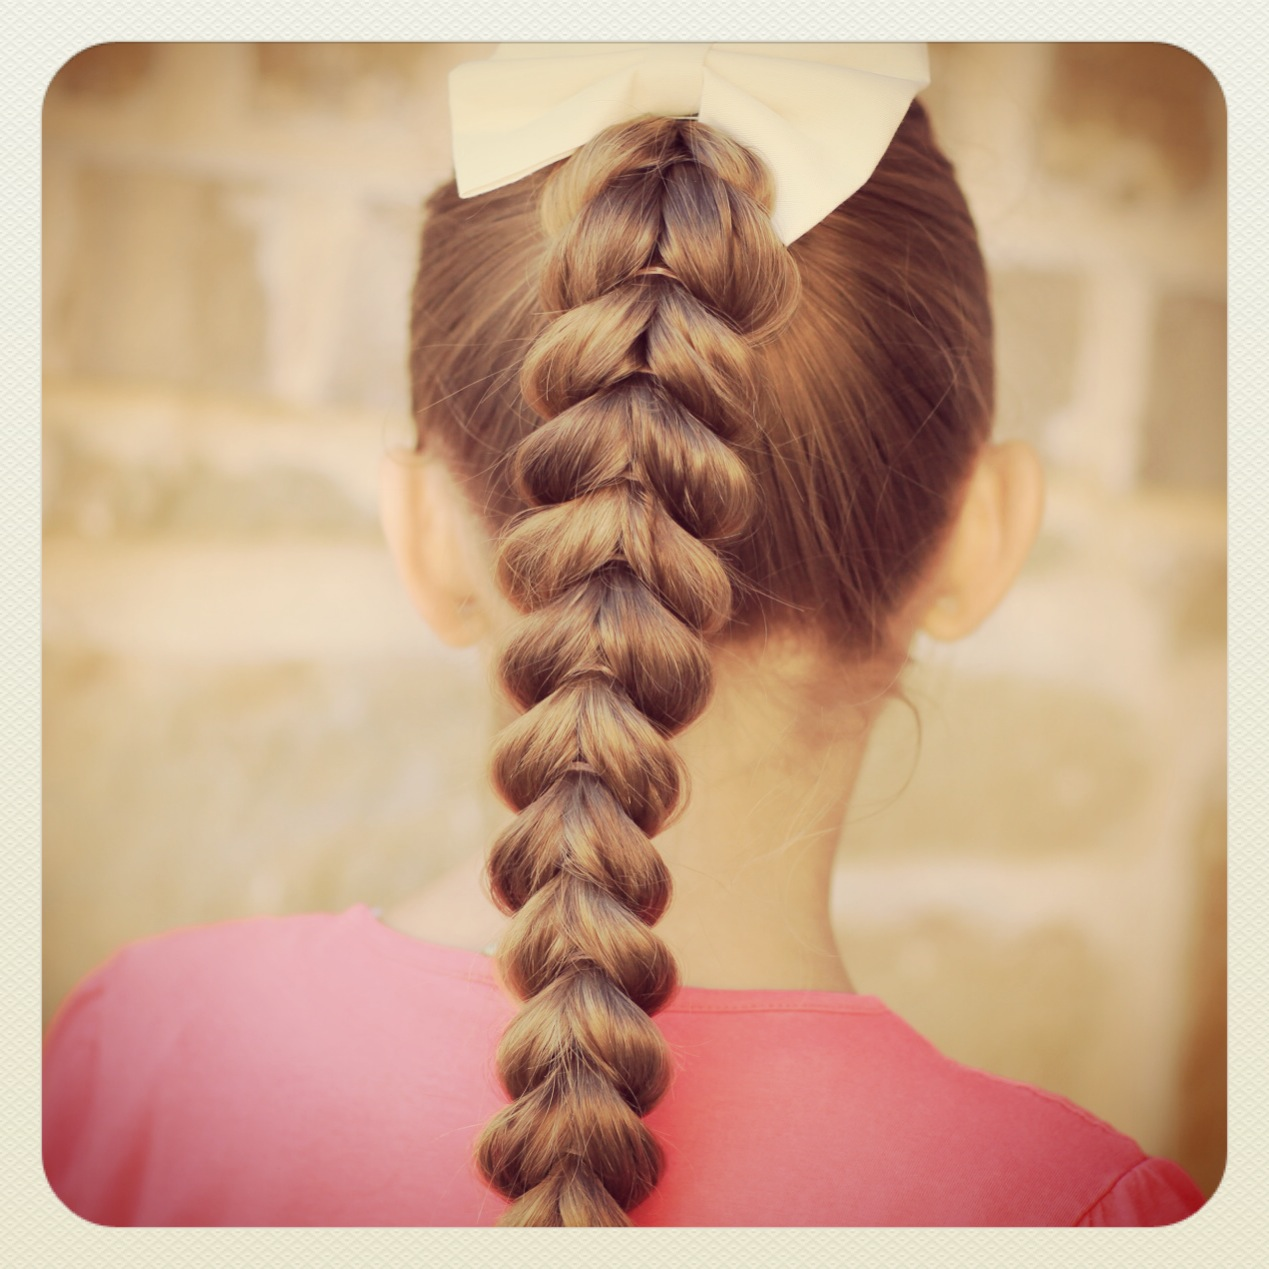 Plus, this Pull-Through Braid is so easy, even a daddy can do it